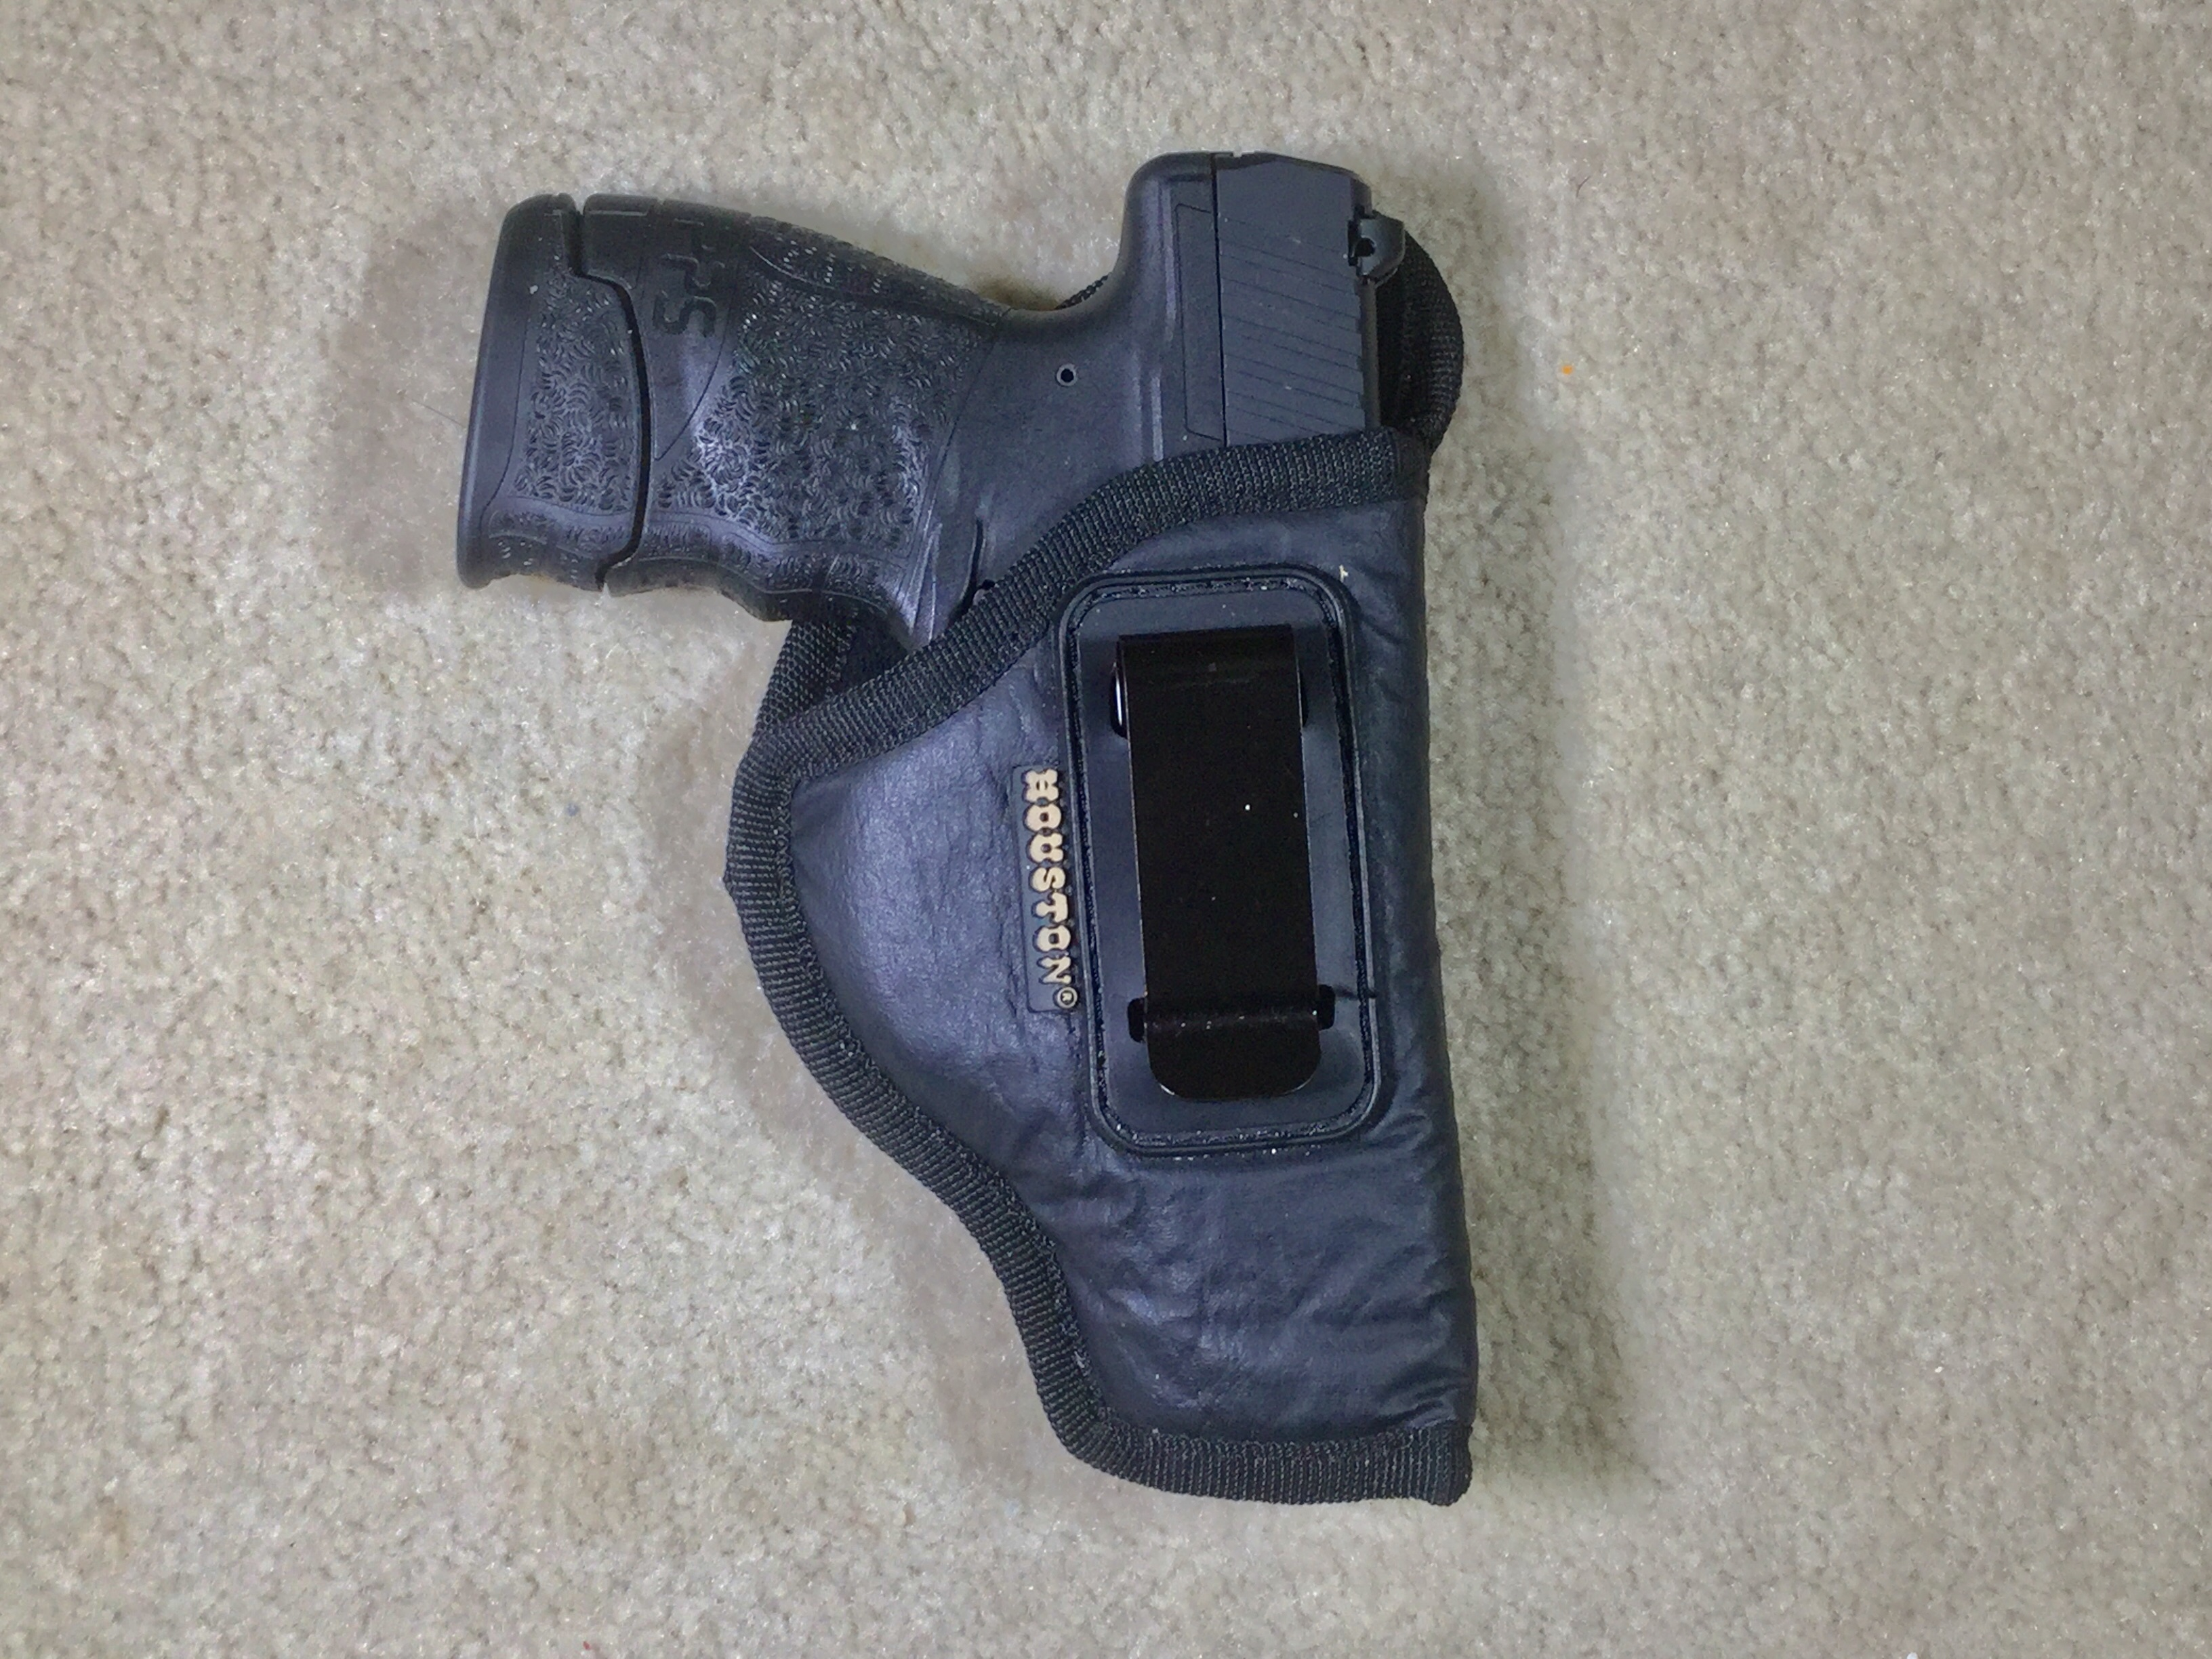 IWB Holster for subcompact pisand two IWB magazine carriers for single stack 9mm mags-fullsizeoutput_24e.jpeg